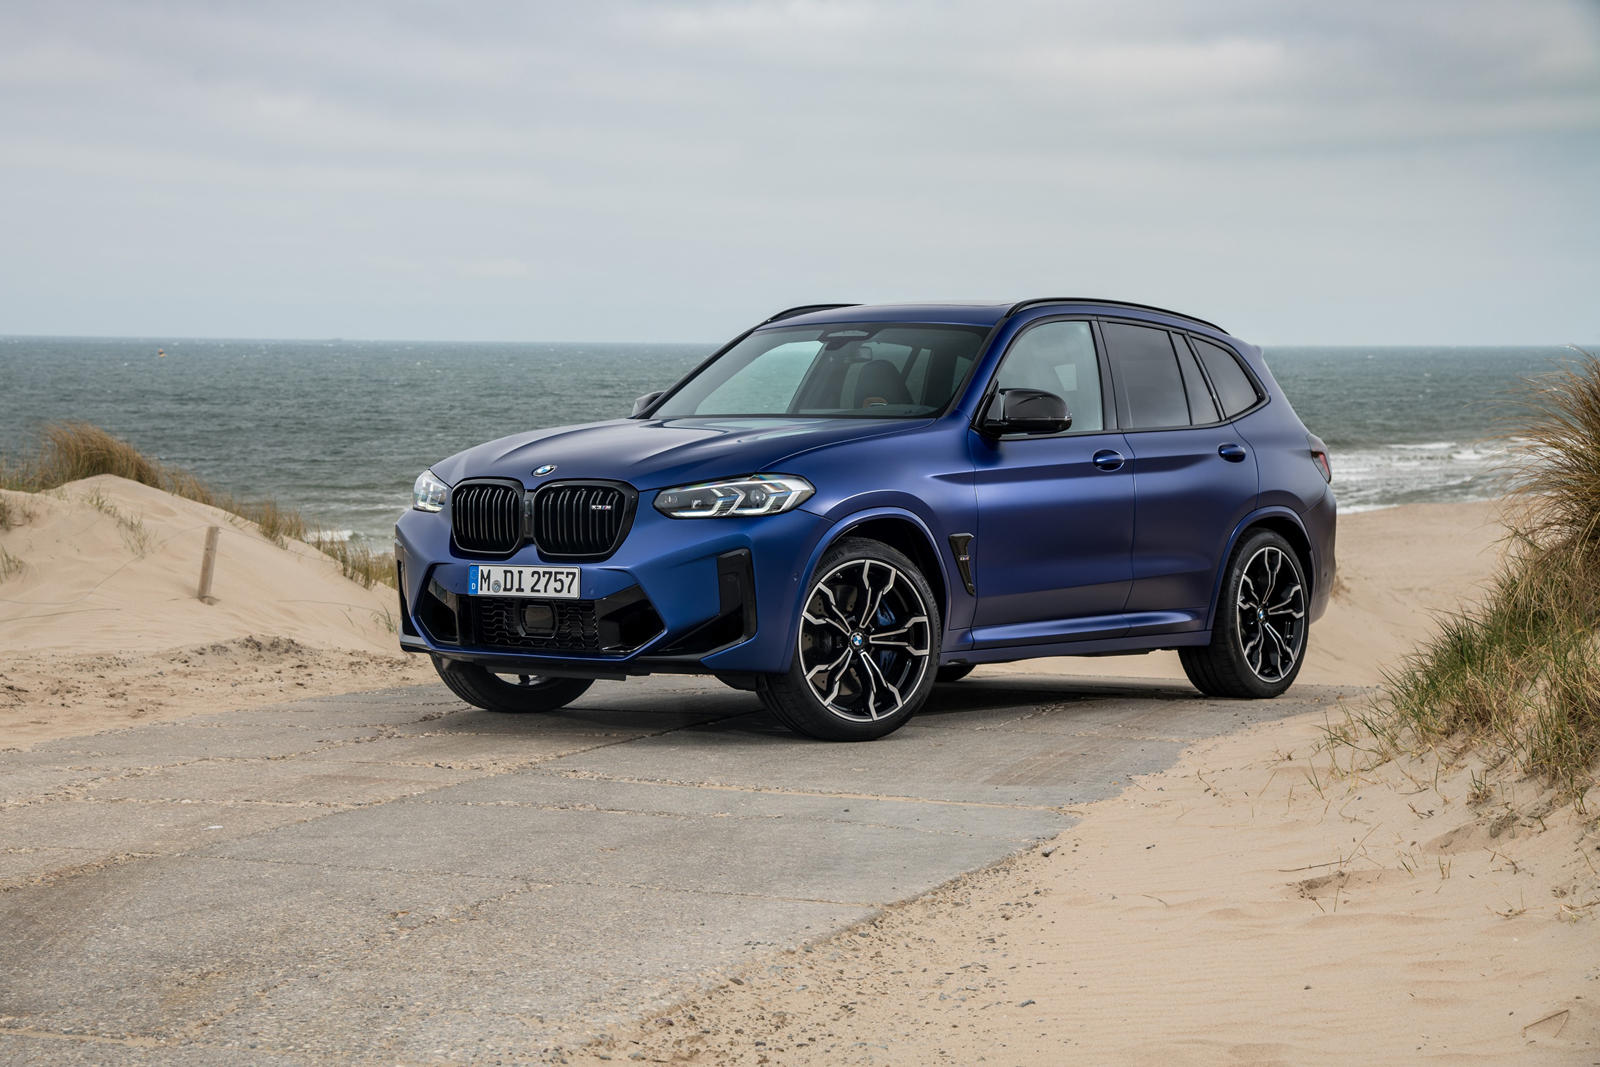 2022 BMW X3 M First Look Review: A Splash Of M3 In An SUV ...